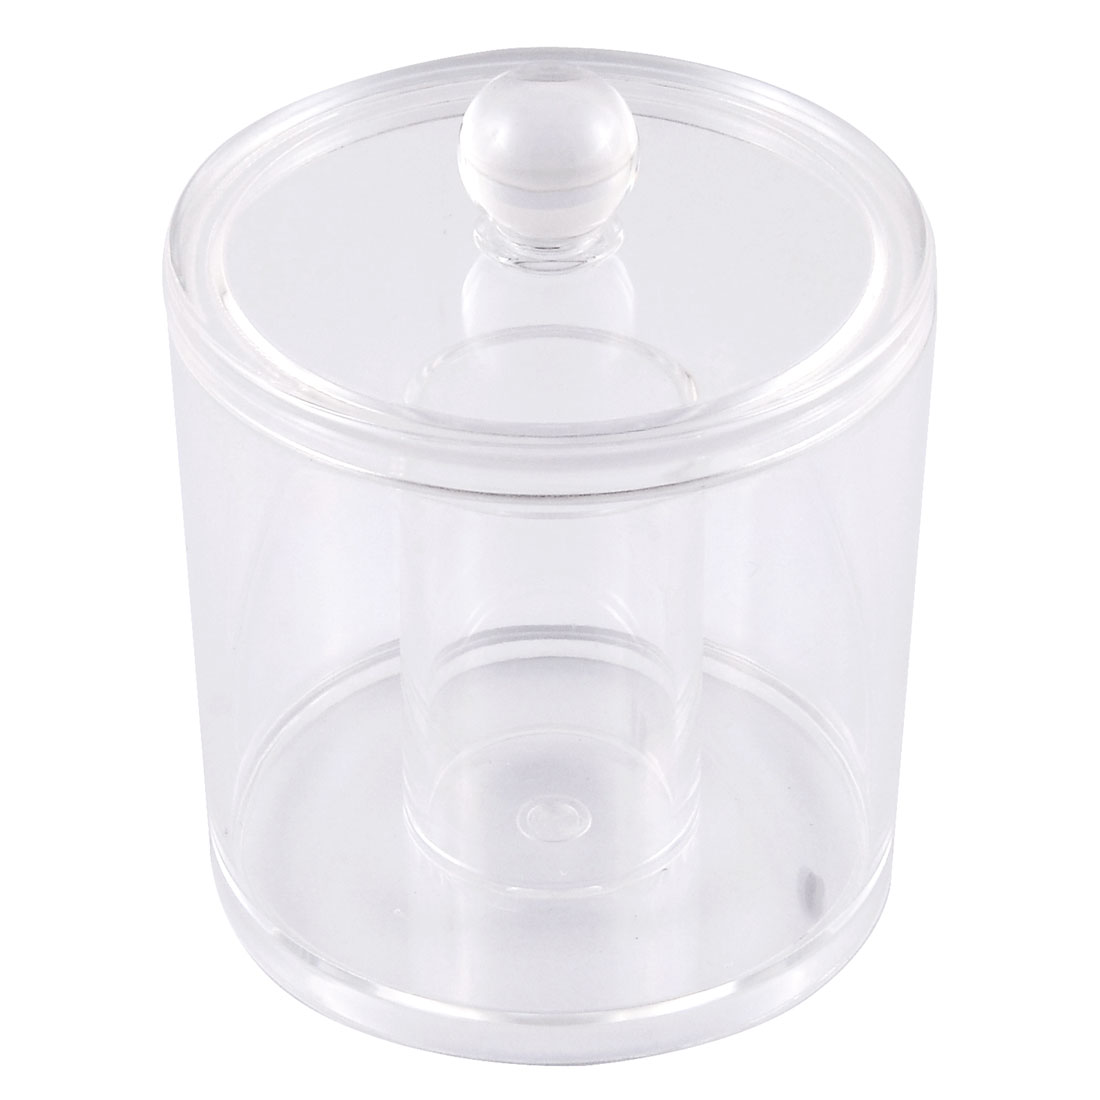 Acrylic Cylindrical Makeup Cosmetic Organizer Cotton Swab Storage Box w Lid